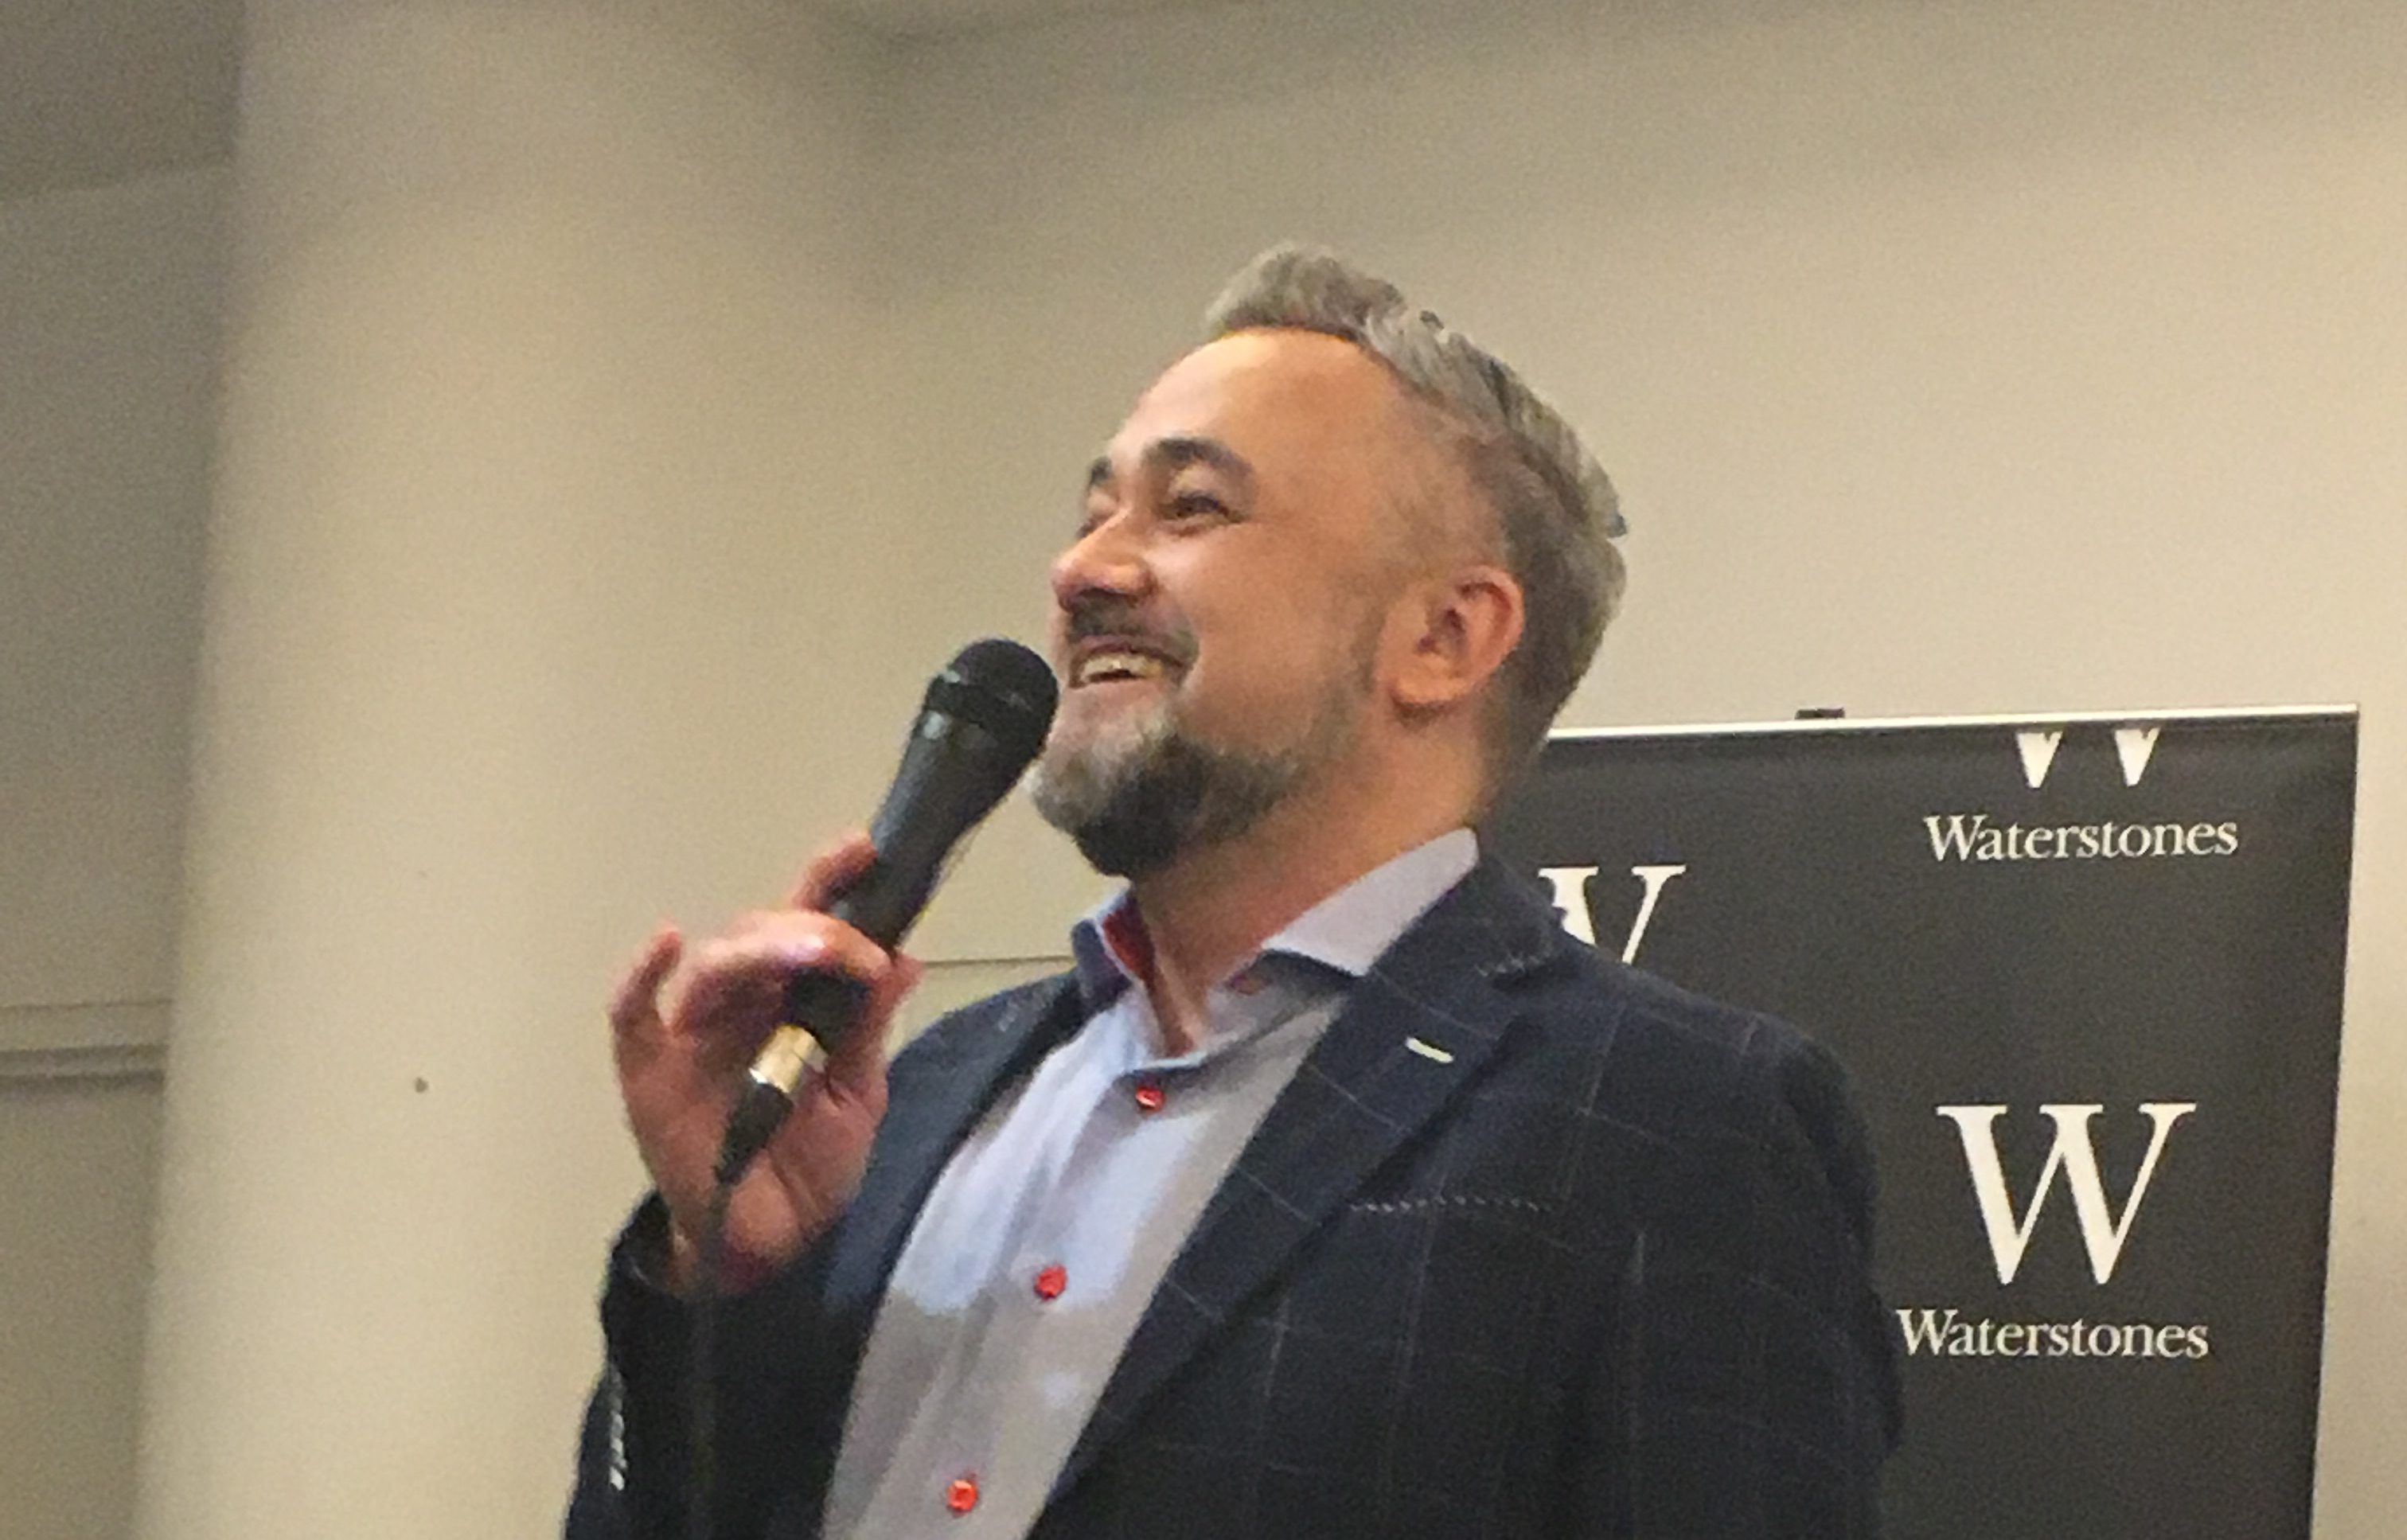 Warren Knight launching his book at Waterstones